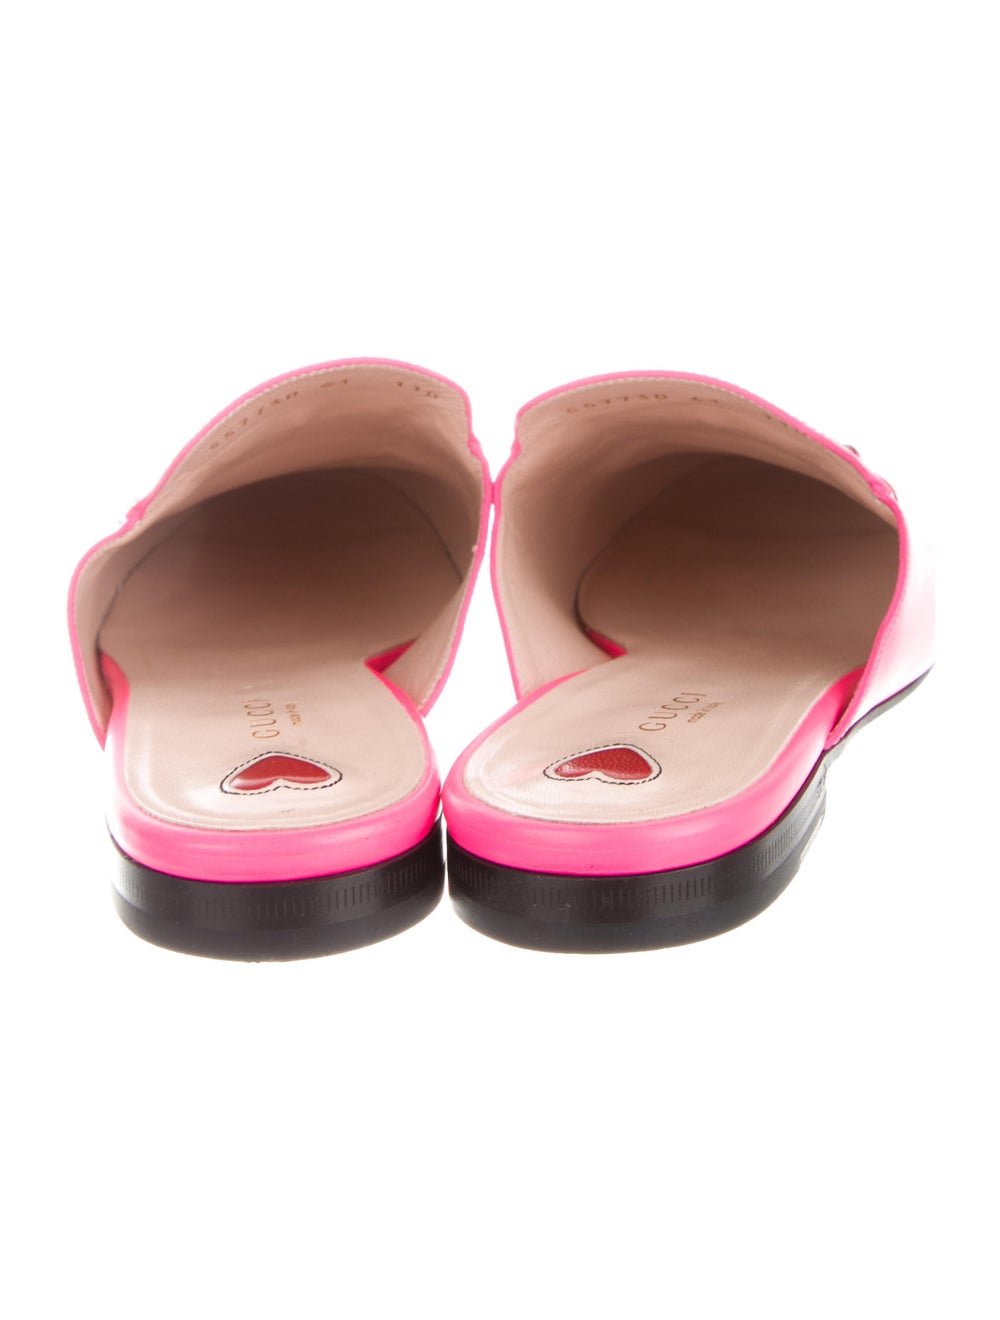 Gucci Princetown Horsebit Accent Mules Pink - image 4